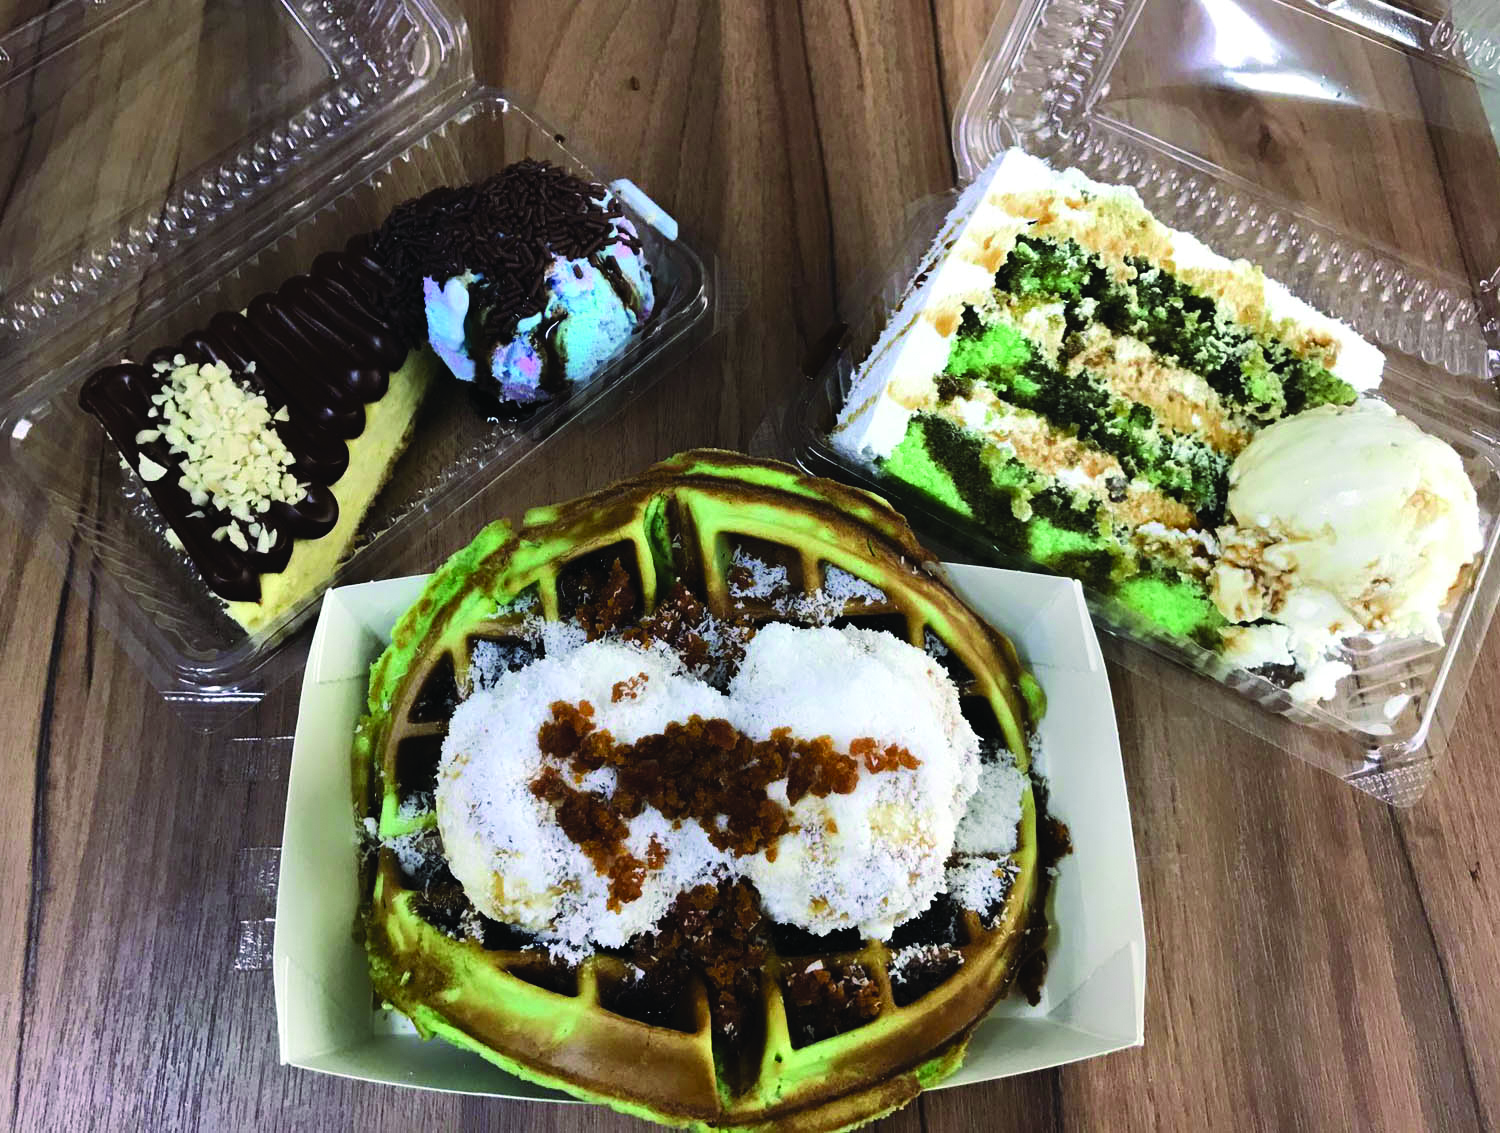 ONE IS NEVER ENOUGH: The Ondeh-Ondeh cake, Ondeh-Ondeh Waffle with Coconut ice-cream and Nutella cheesecake are the three must-try desserts which will make you regret nothing as it's filled with pure goodness. PHOTO: Arifah Rahmat